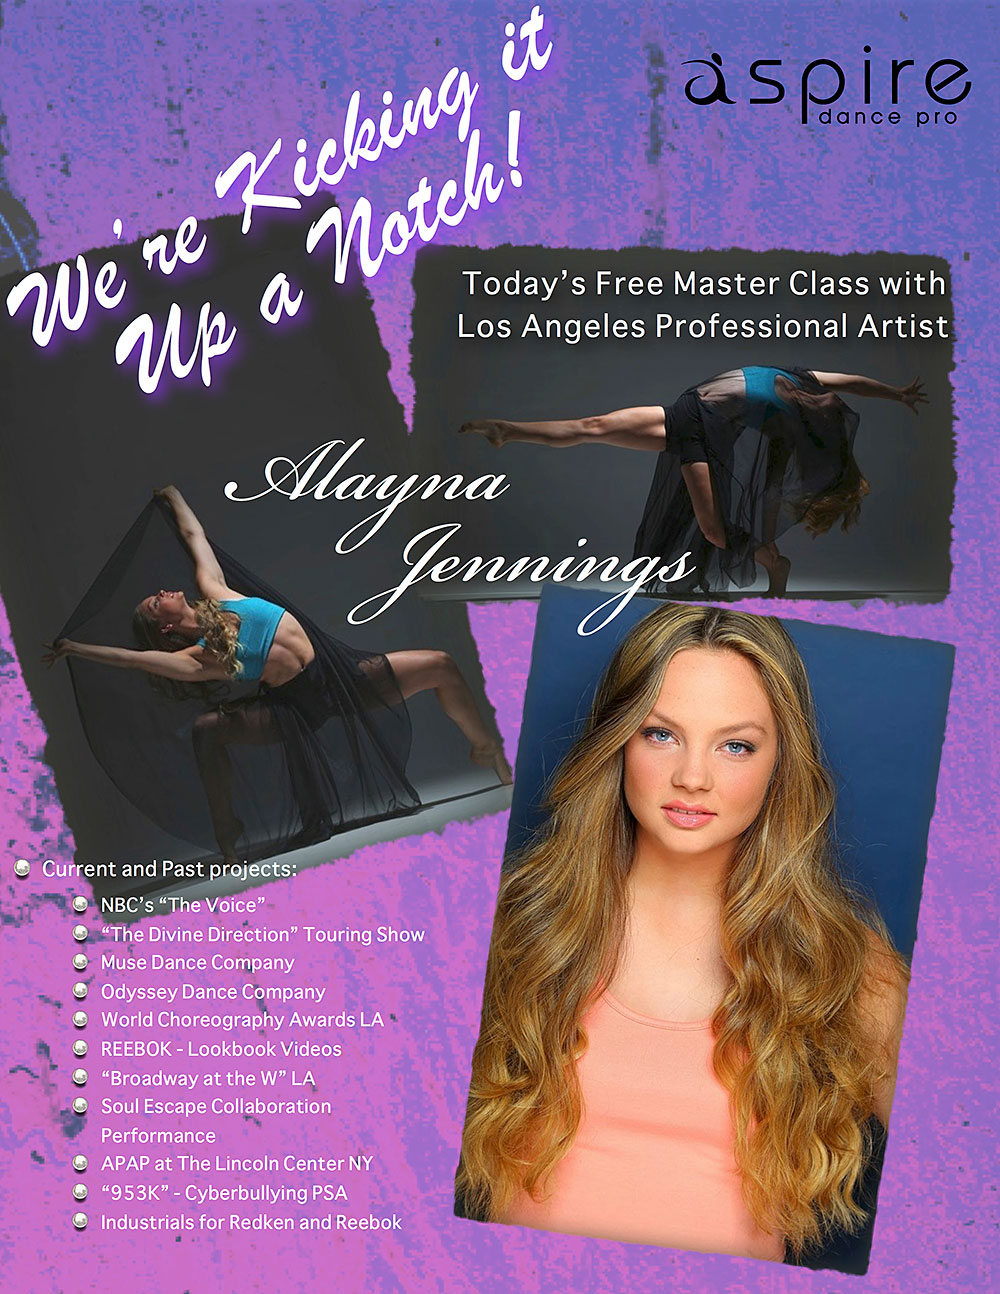 Alayna Jenning - Aspire Dance Pro Competitions Master Class Instructor